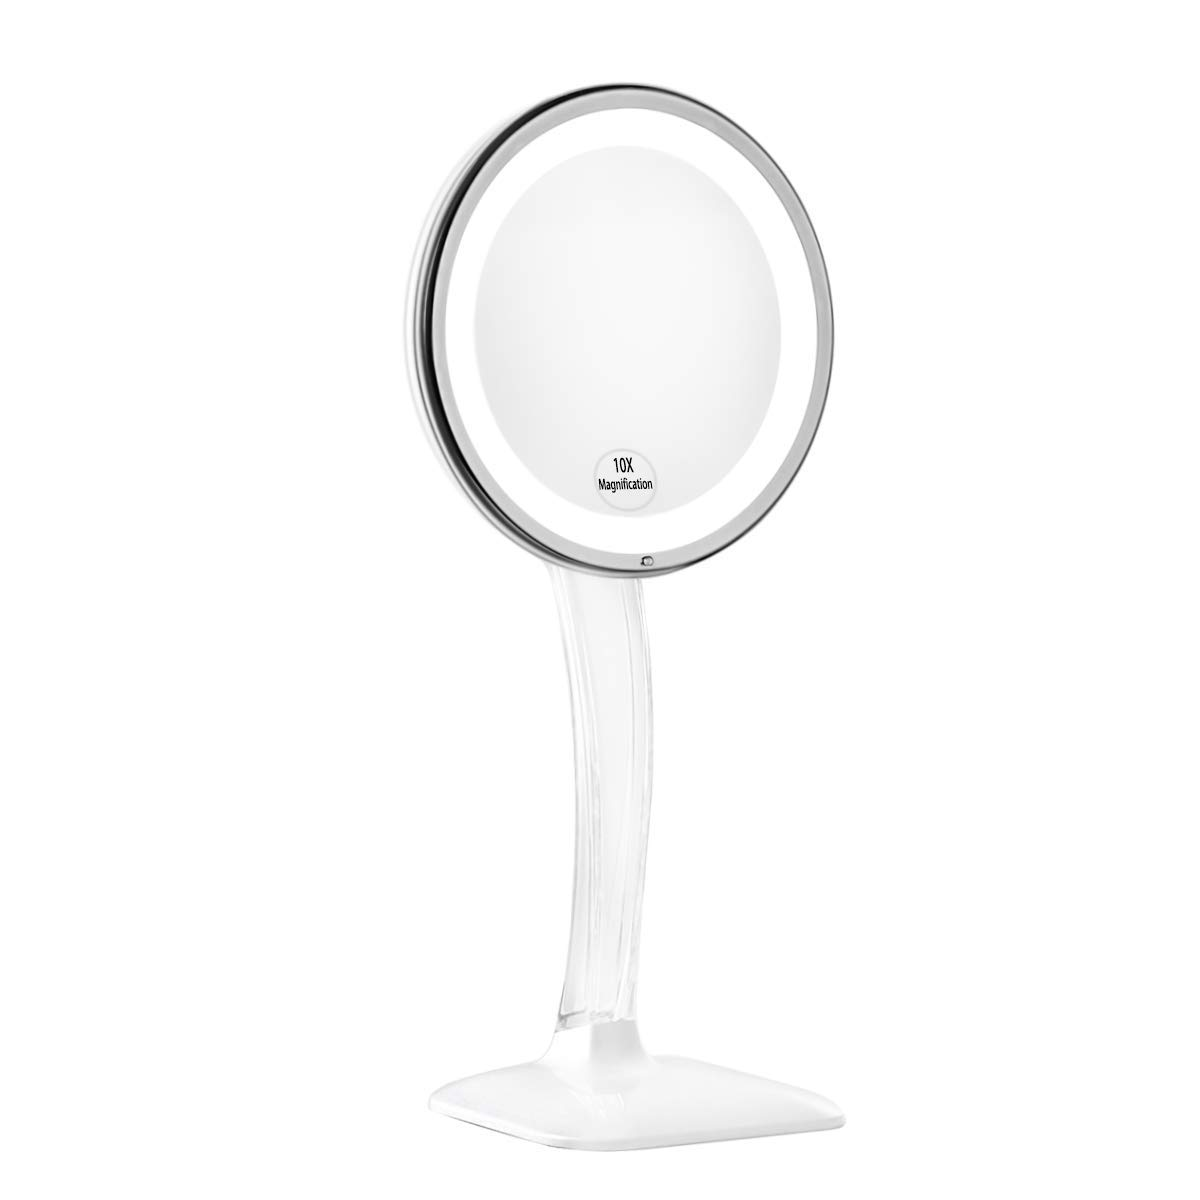 KEDSUM Upgraded 10X Magnifying Lighted Makeup Mirror, Desktop Vanity Mirror with Height 12.6-16.2'', Cosmetic Magnification Mirror with Lights, Dual Power Supply, Wireless Tabletop Lighted Mirror